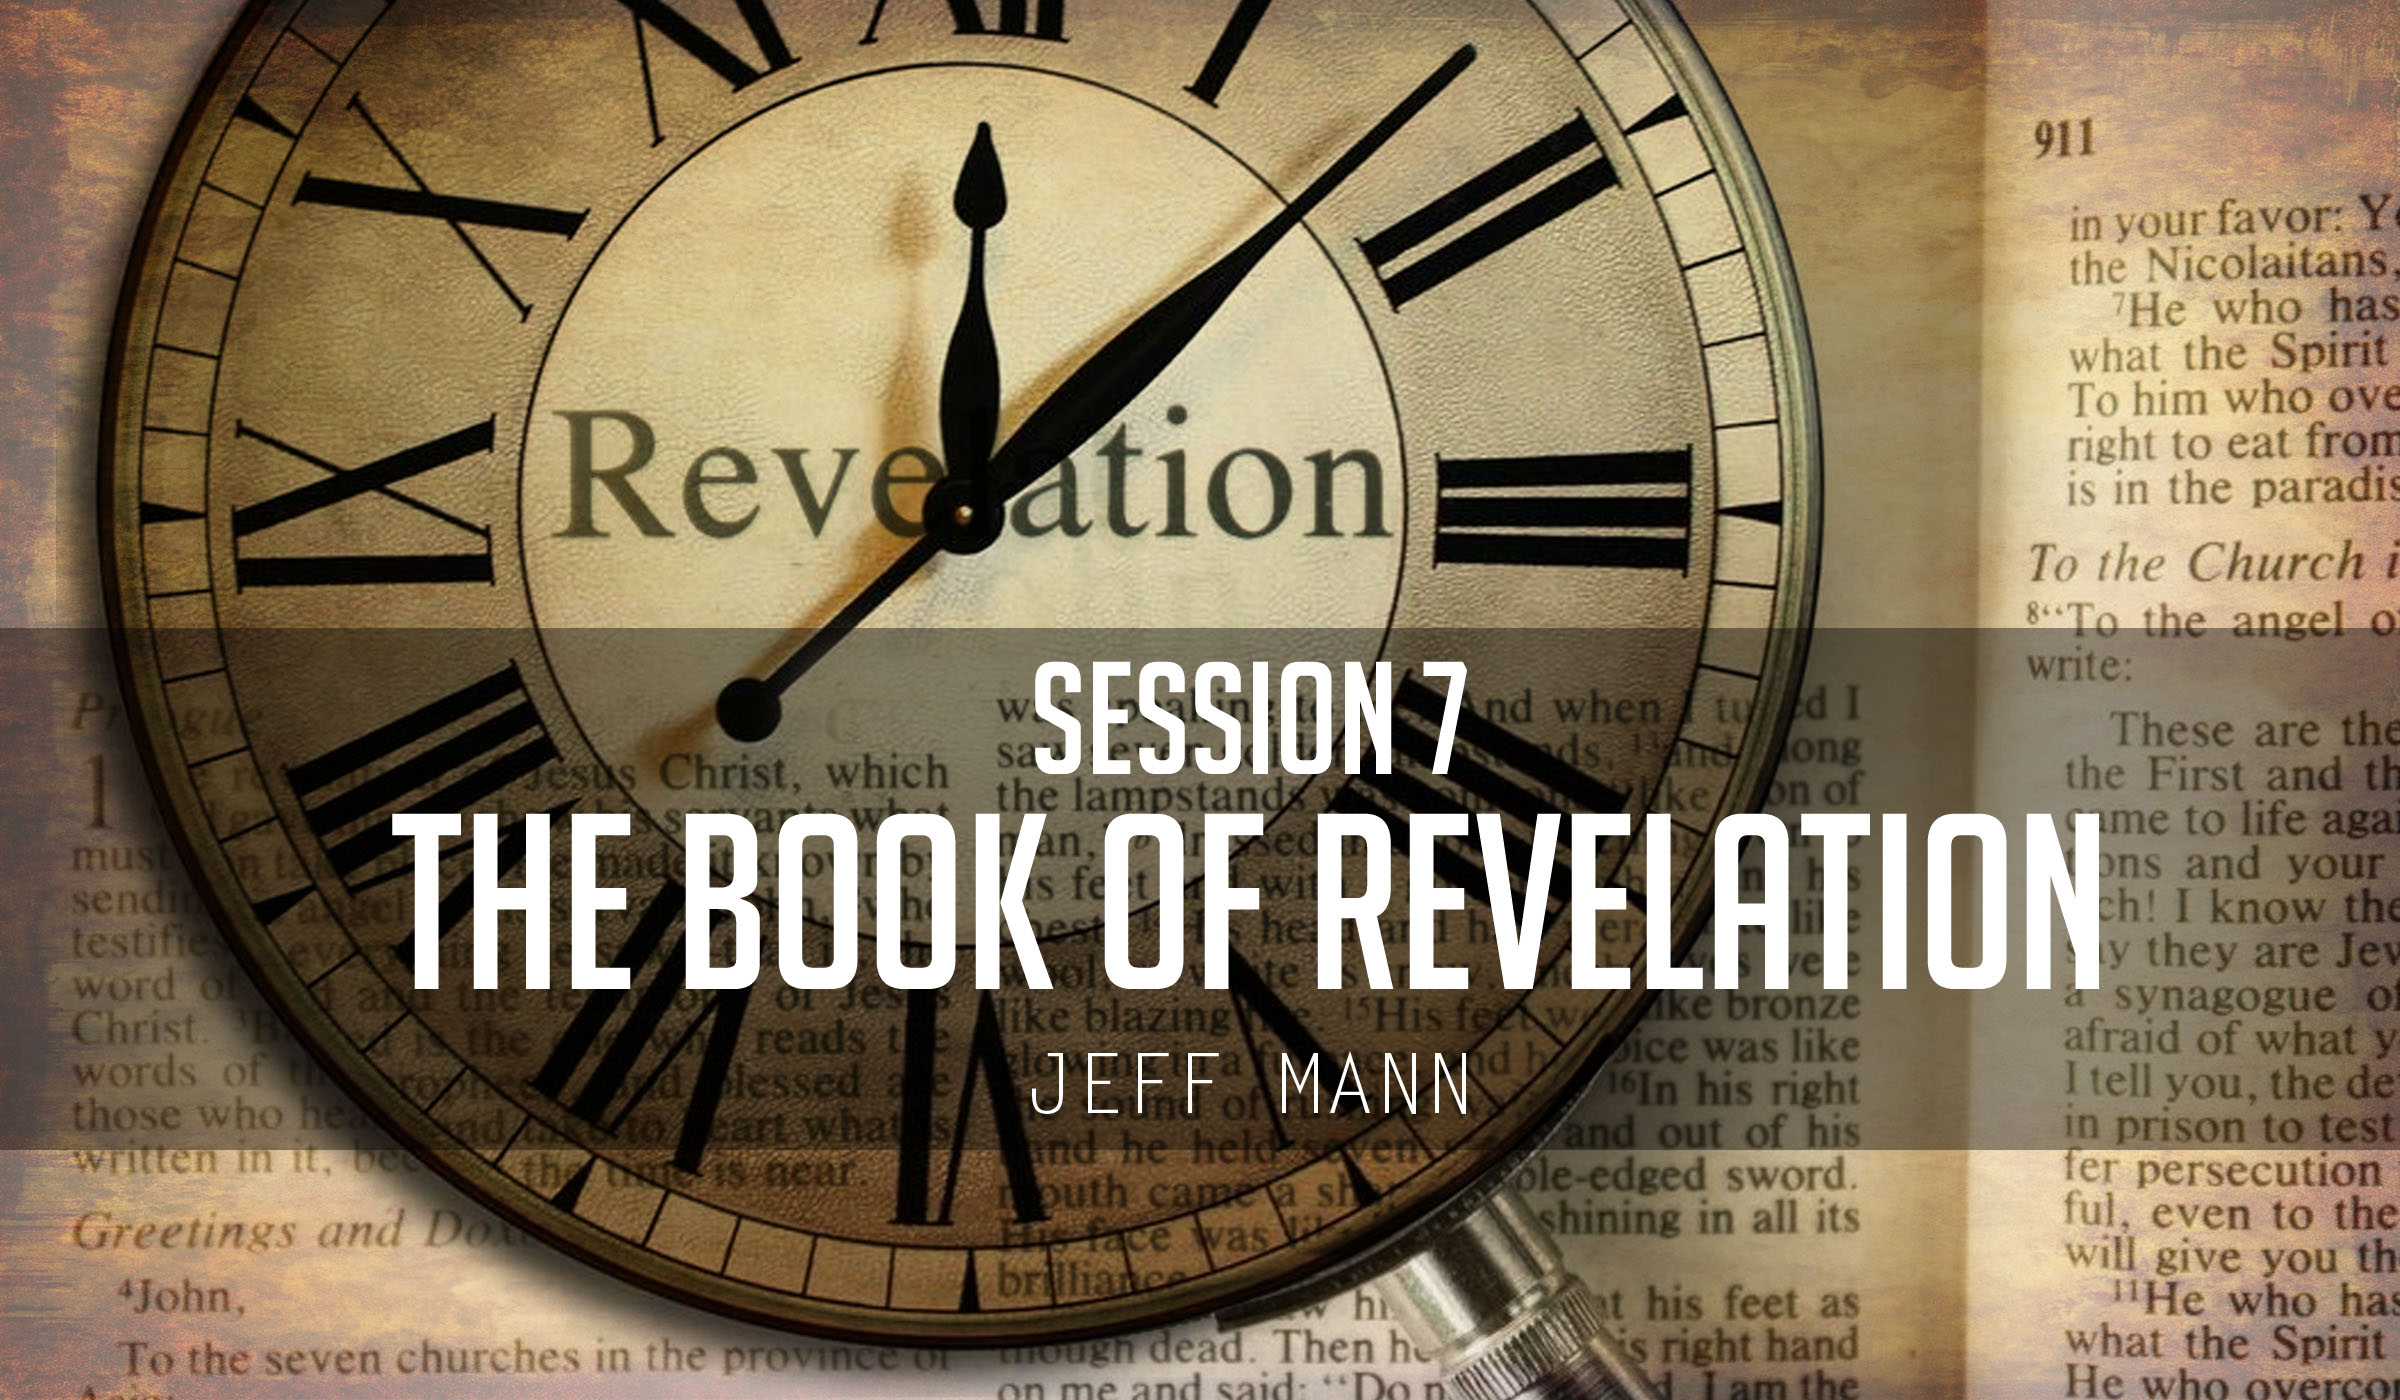 The Book of Revelation Session 7